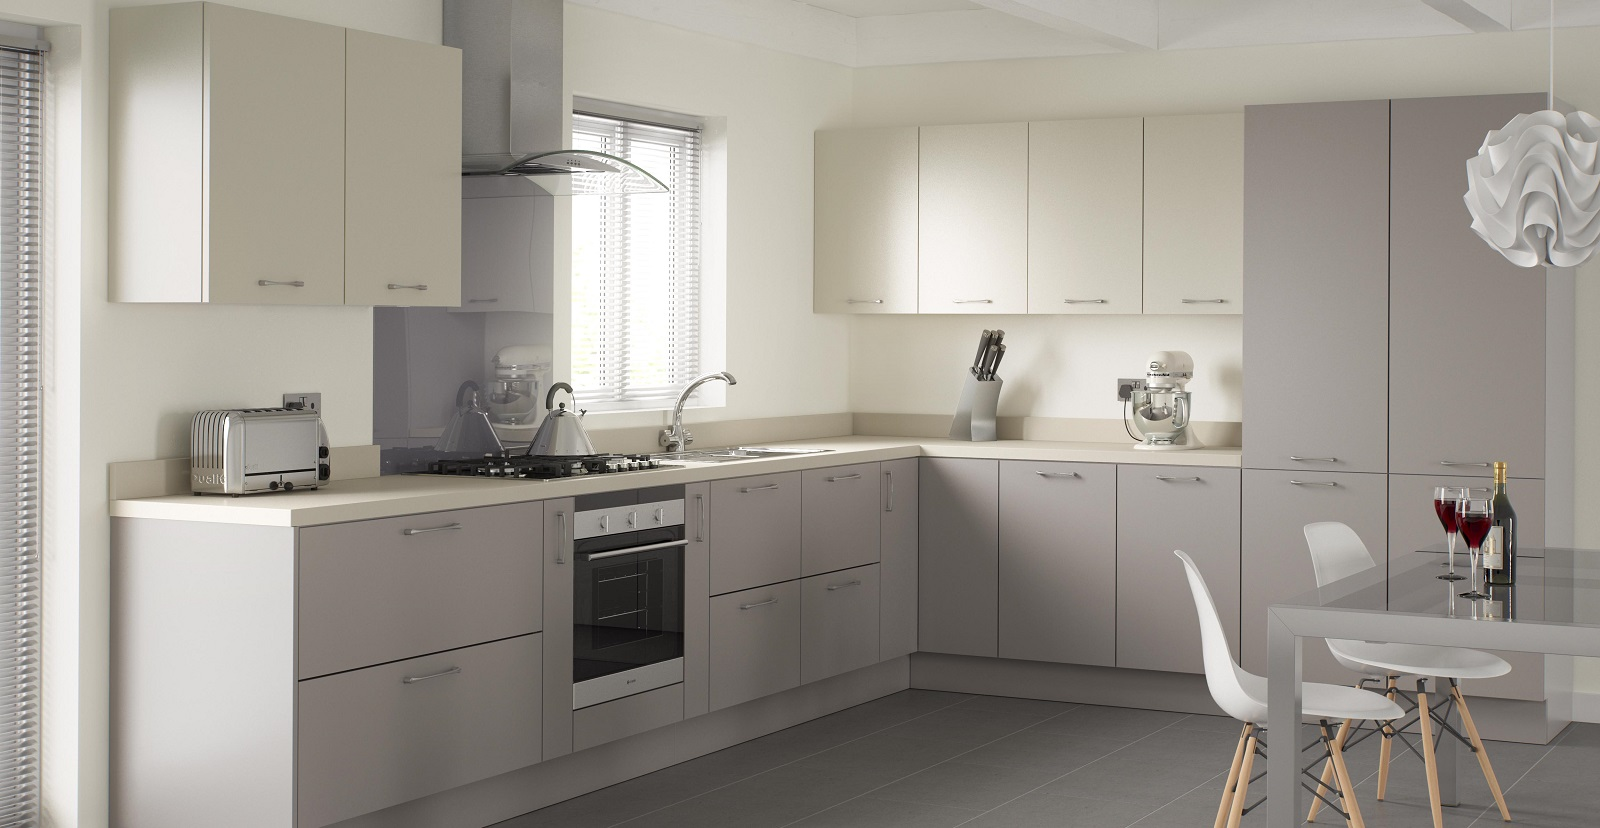 Signature Kitchens Bathrooms And Bedrooms Isle Of Wight